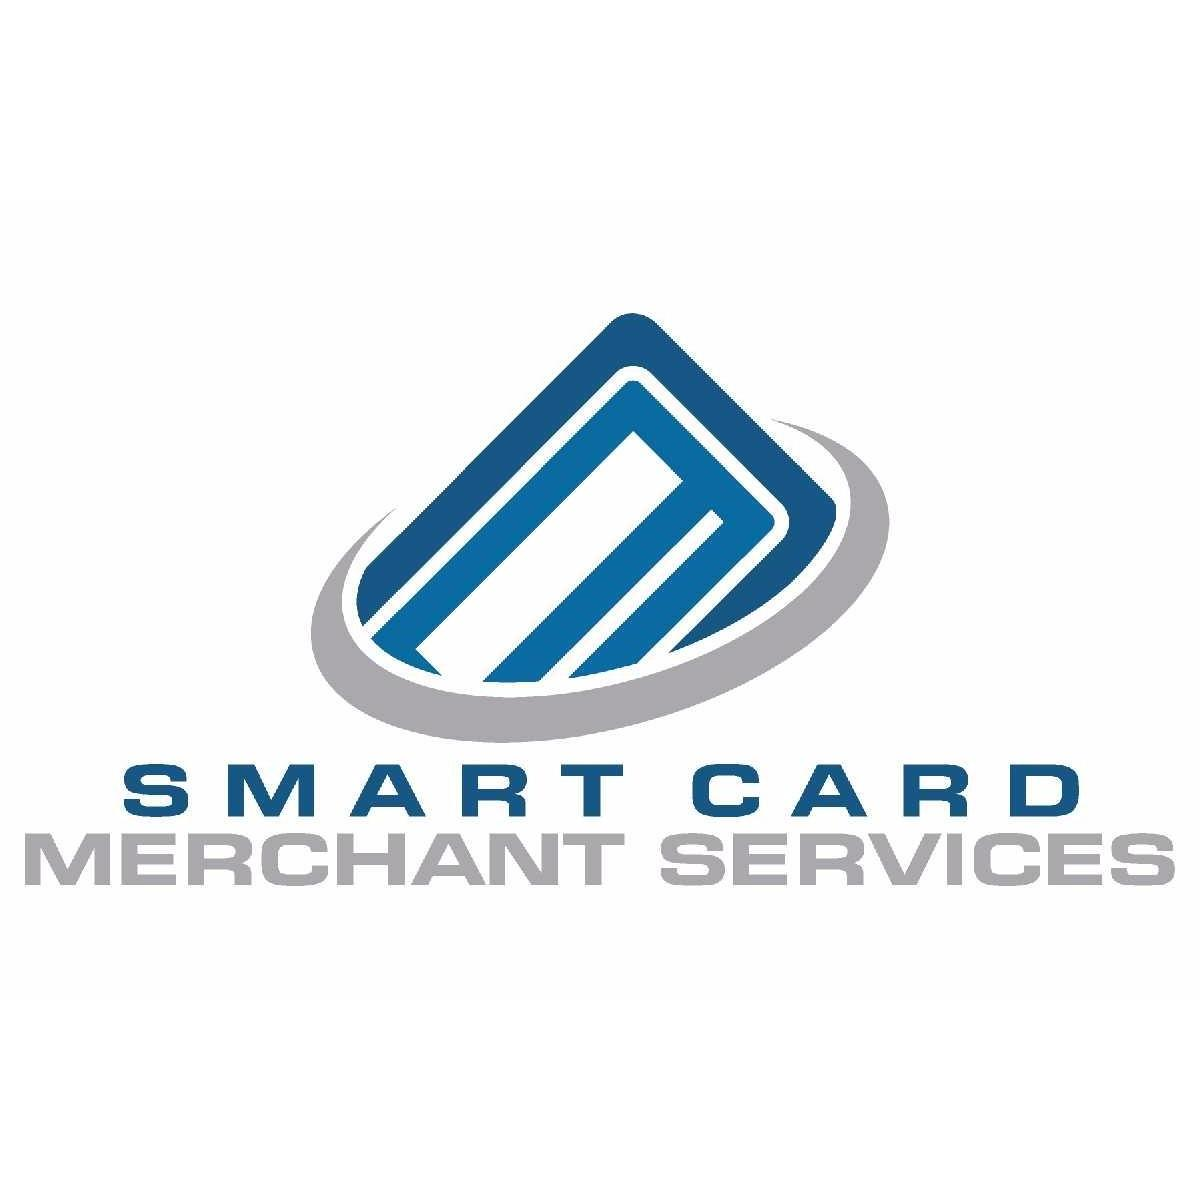 Smart Card Merchant Services